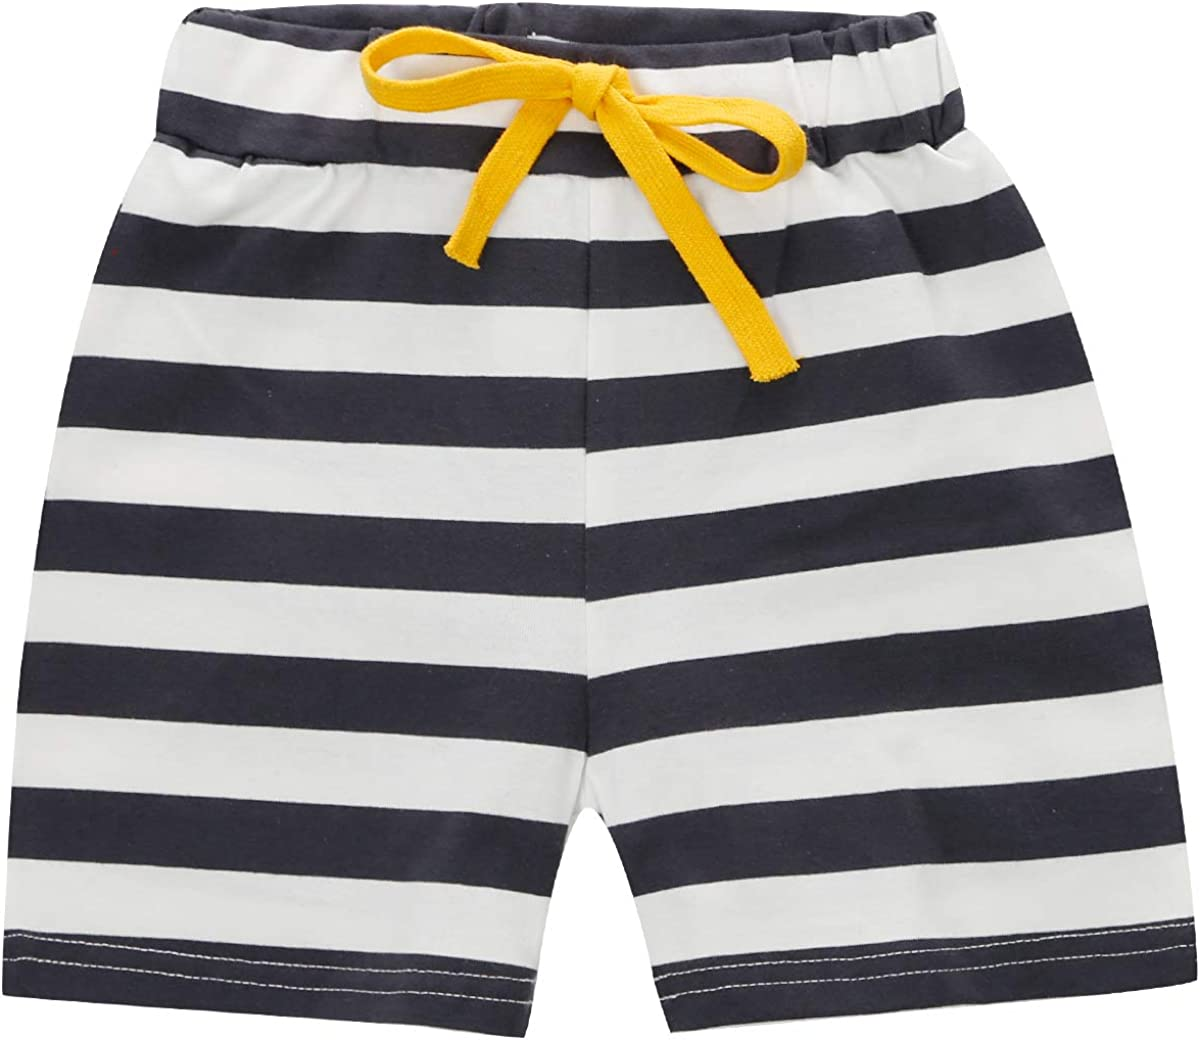 Shorts 2pcs 1-6 Years CARETOO Baby Boy Polo Shirt Top Cotton Striped Short Sleeve T-Shirt